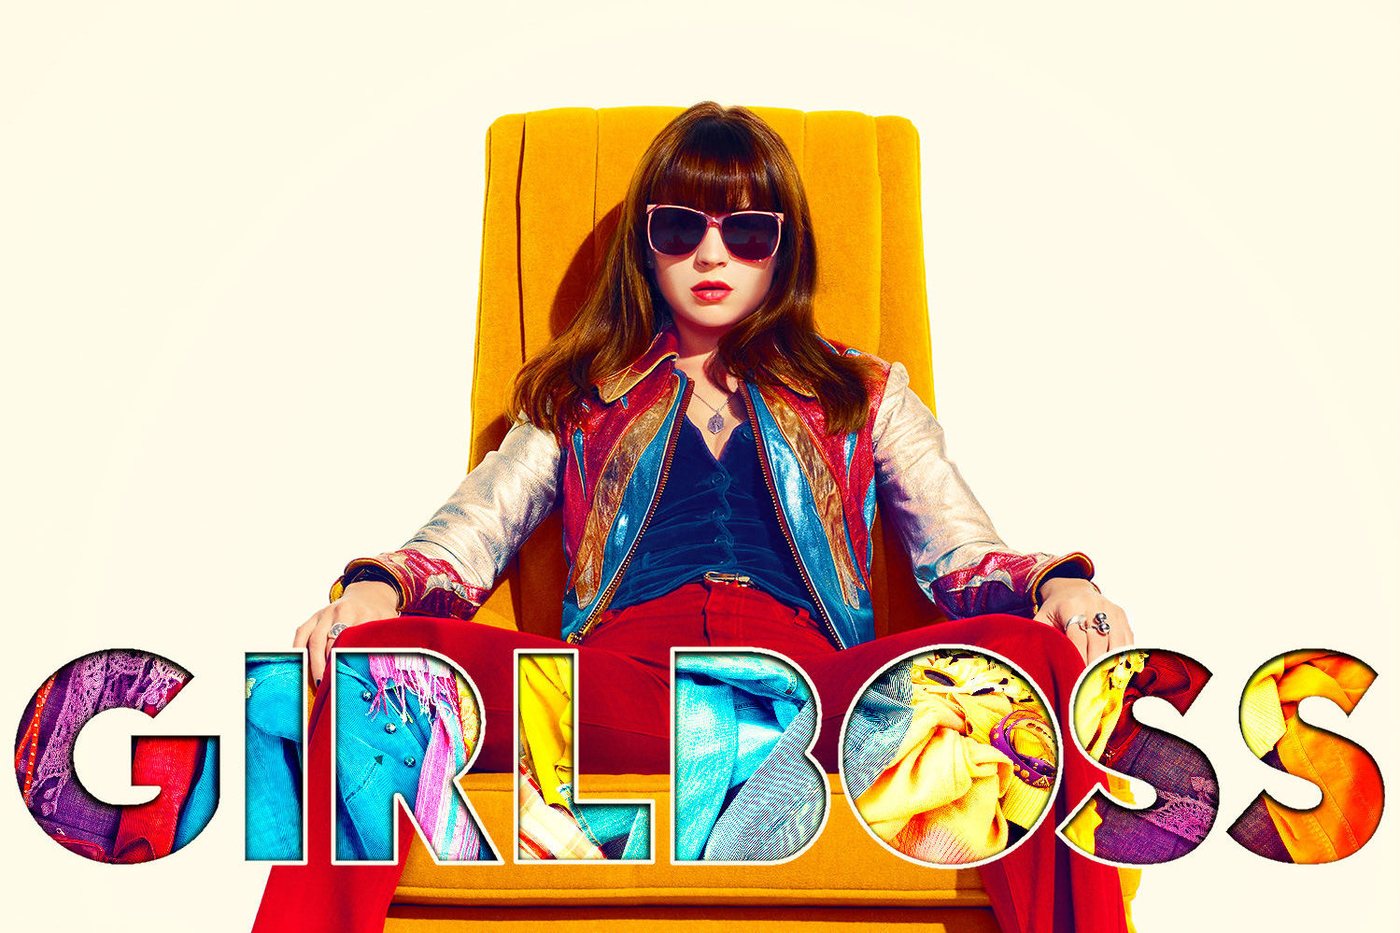 girlboss-tv-show-on-netflix-canceled-or-renewed-for-another-season-1-e1492457855425.jpg